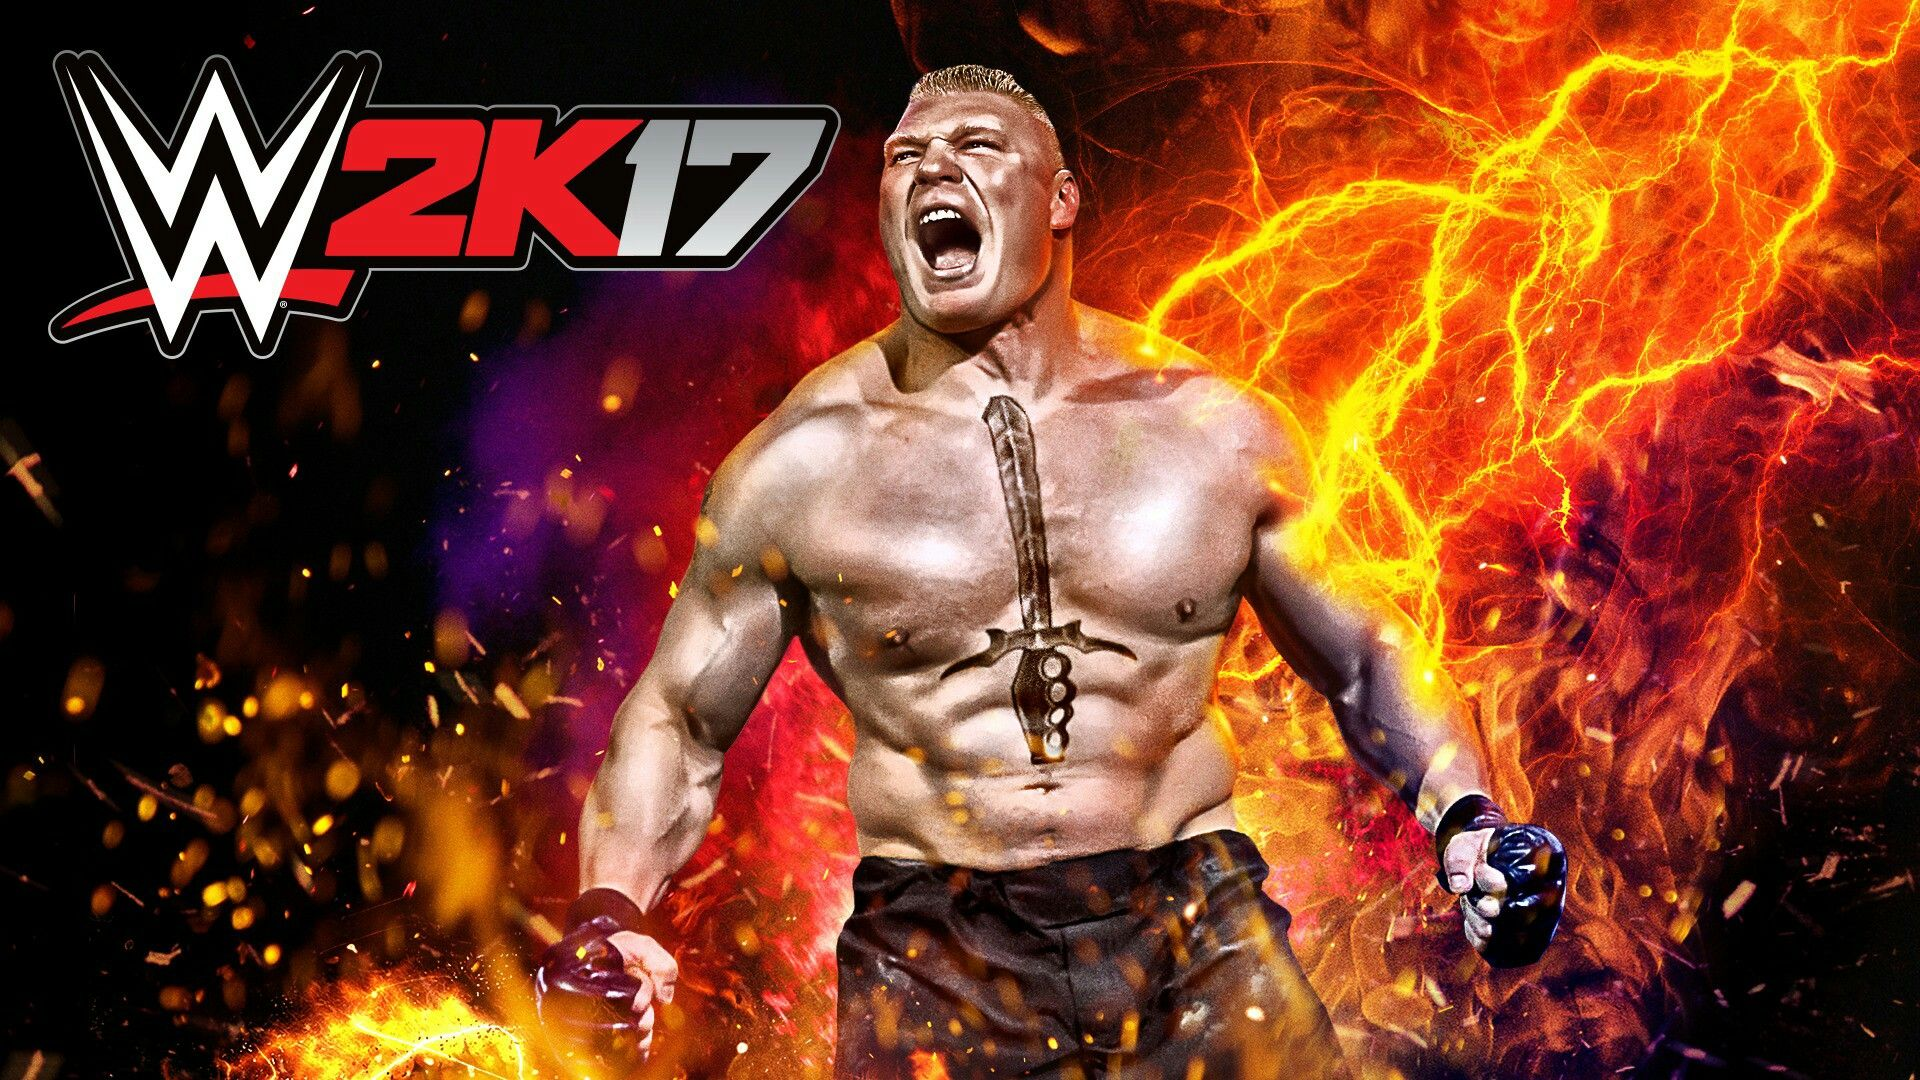 Pin By Prathamesh D On Wwe 2k Wallpapers Wwe Game Download Wwe Game Wrestling Games